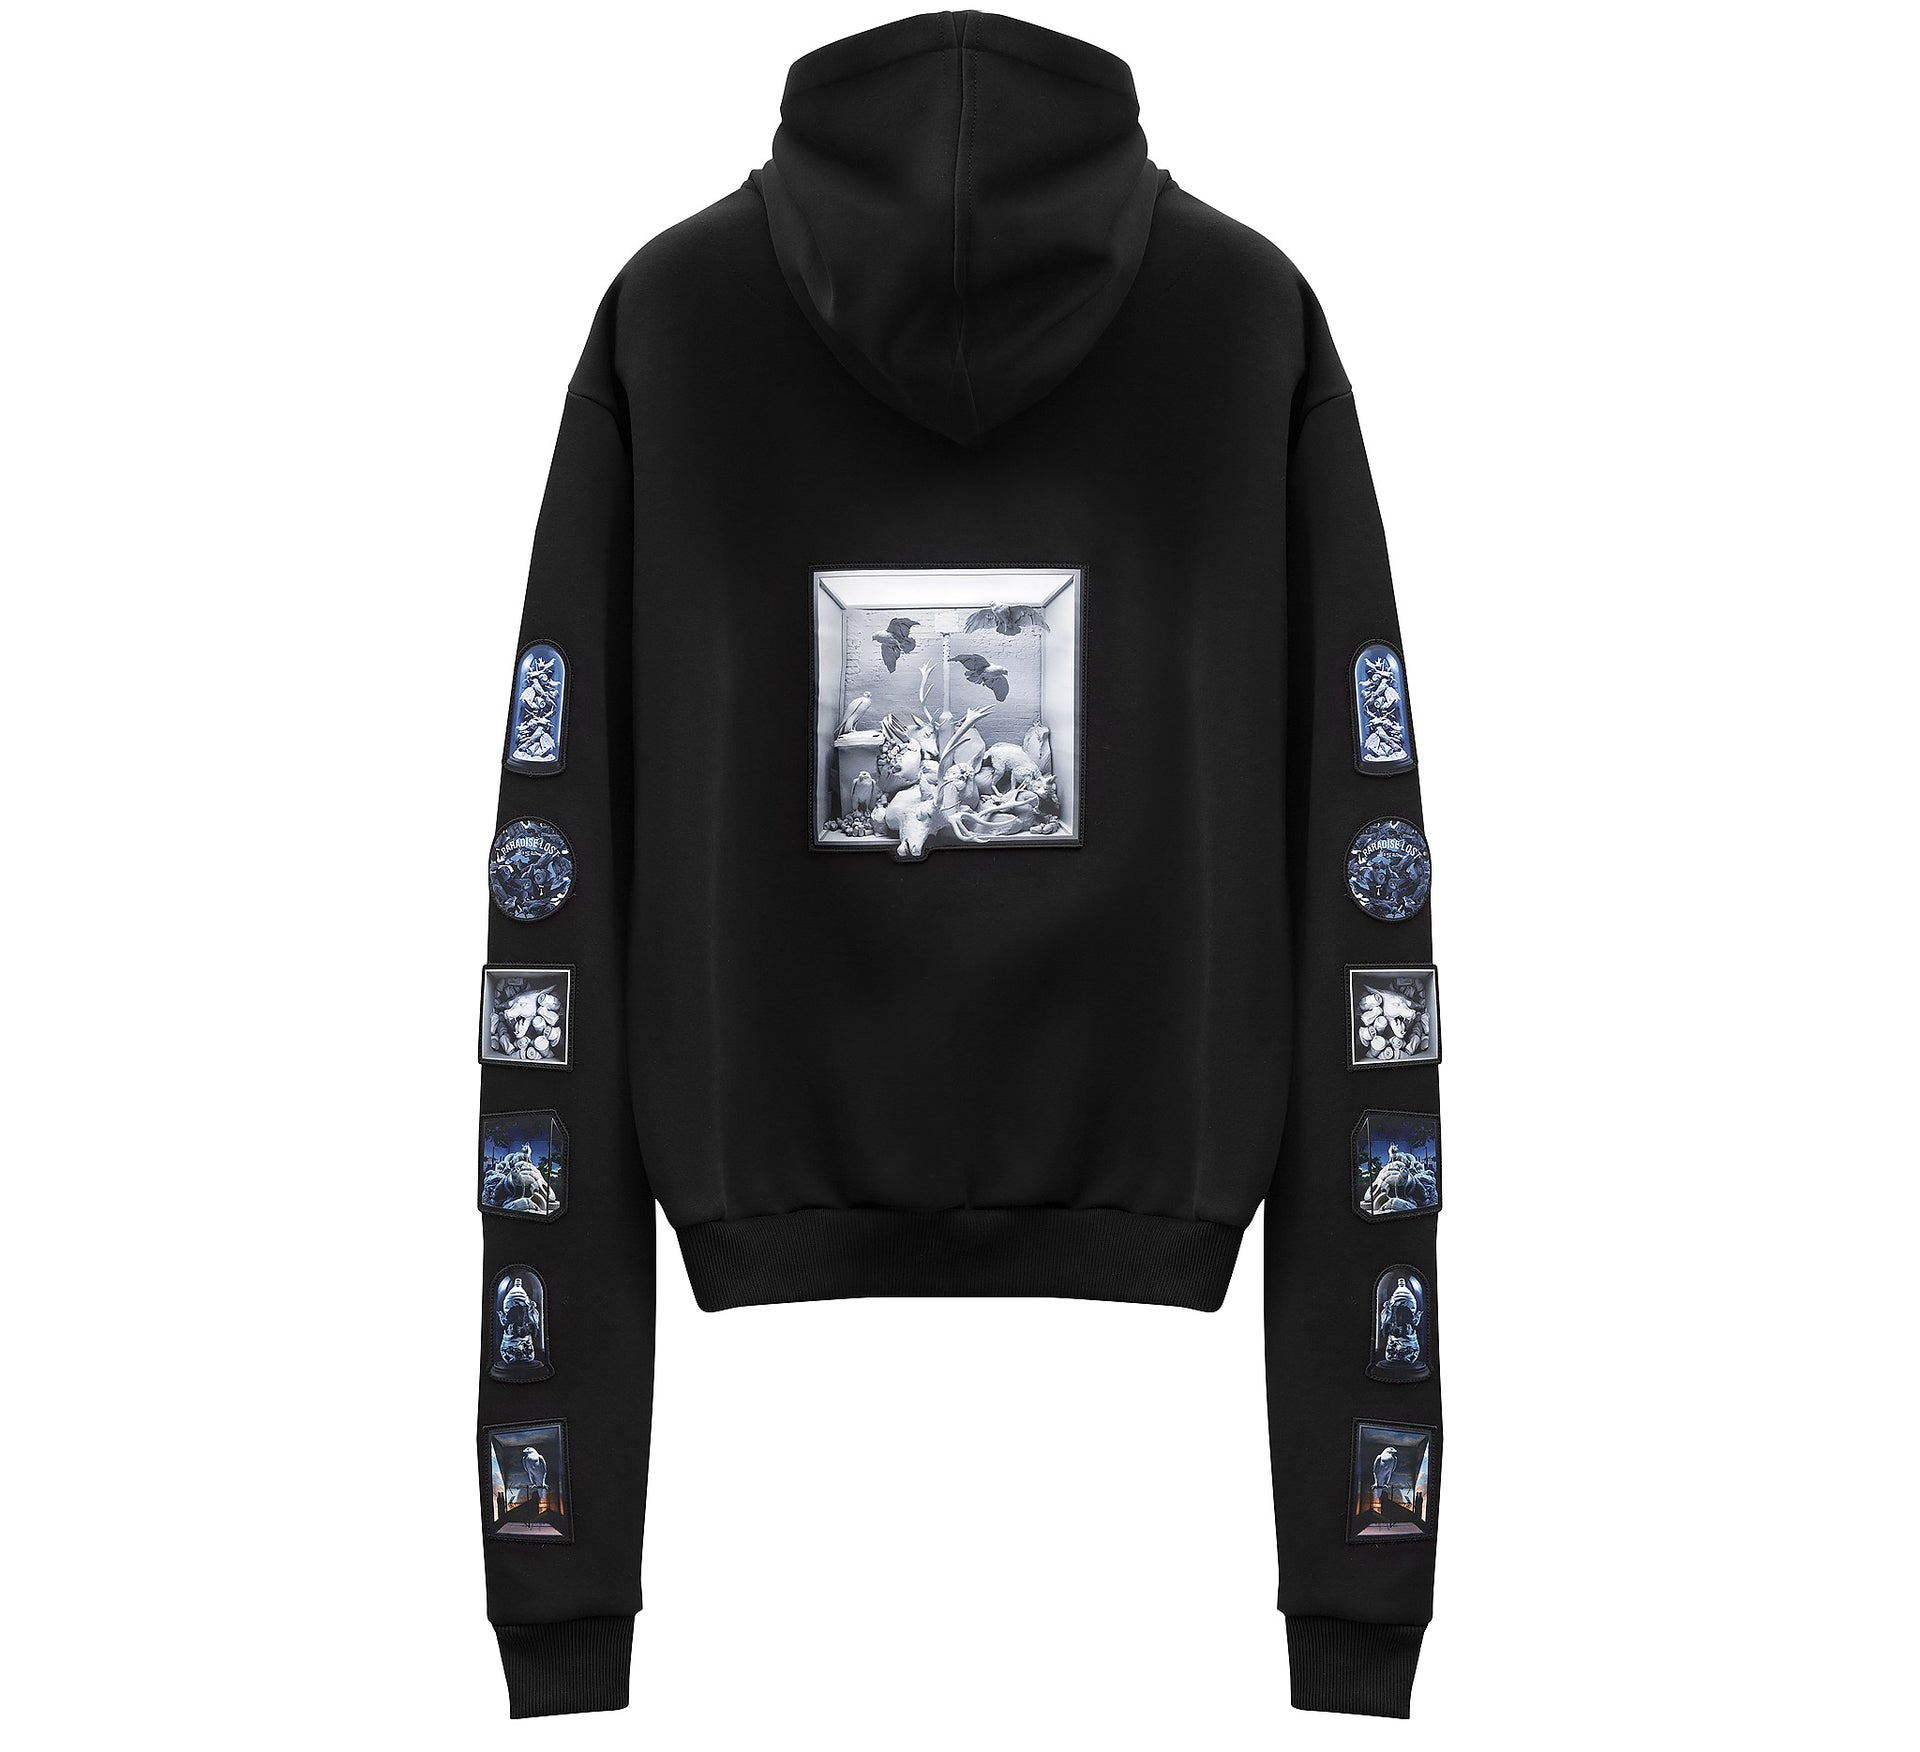 This Is Not Clothing - PARADISE LOST HOODIE I